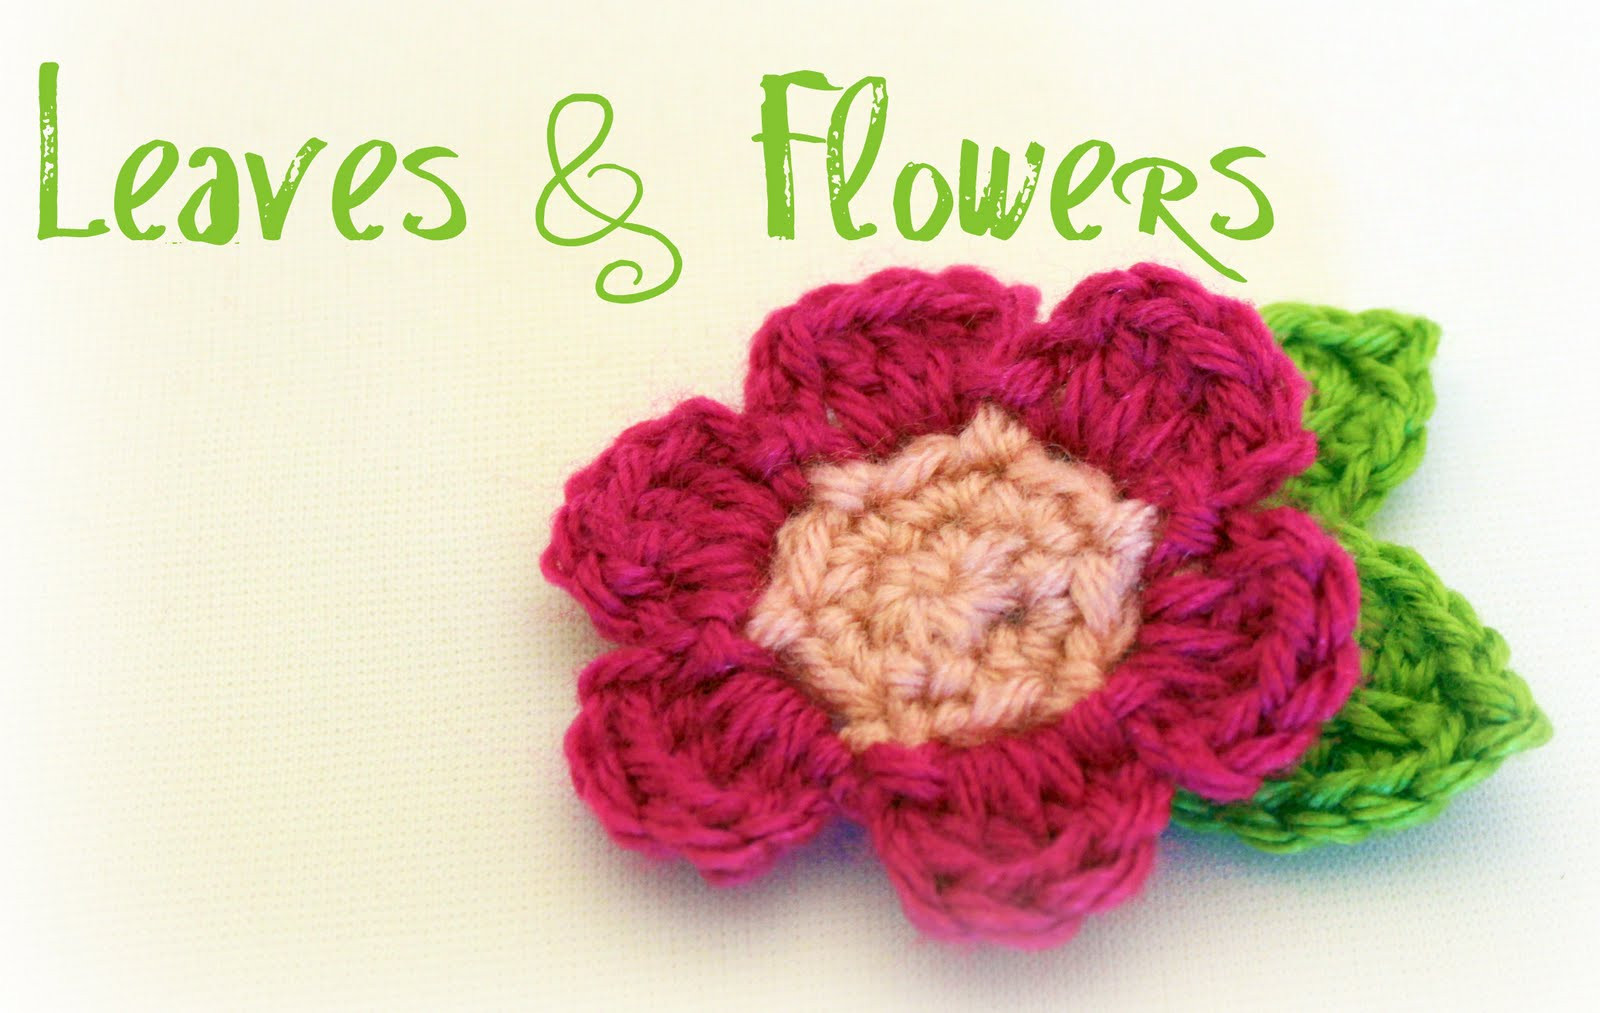 Easy Crochet Patterns Awesome Easy Crochet Pattern Fast Crochet and Knitting Patterns Of Beautiful 47 Pictures Easy Crochet Patterns